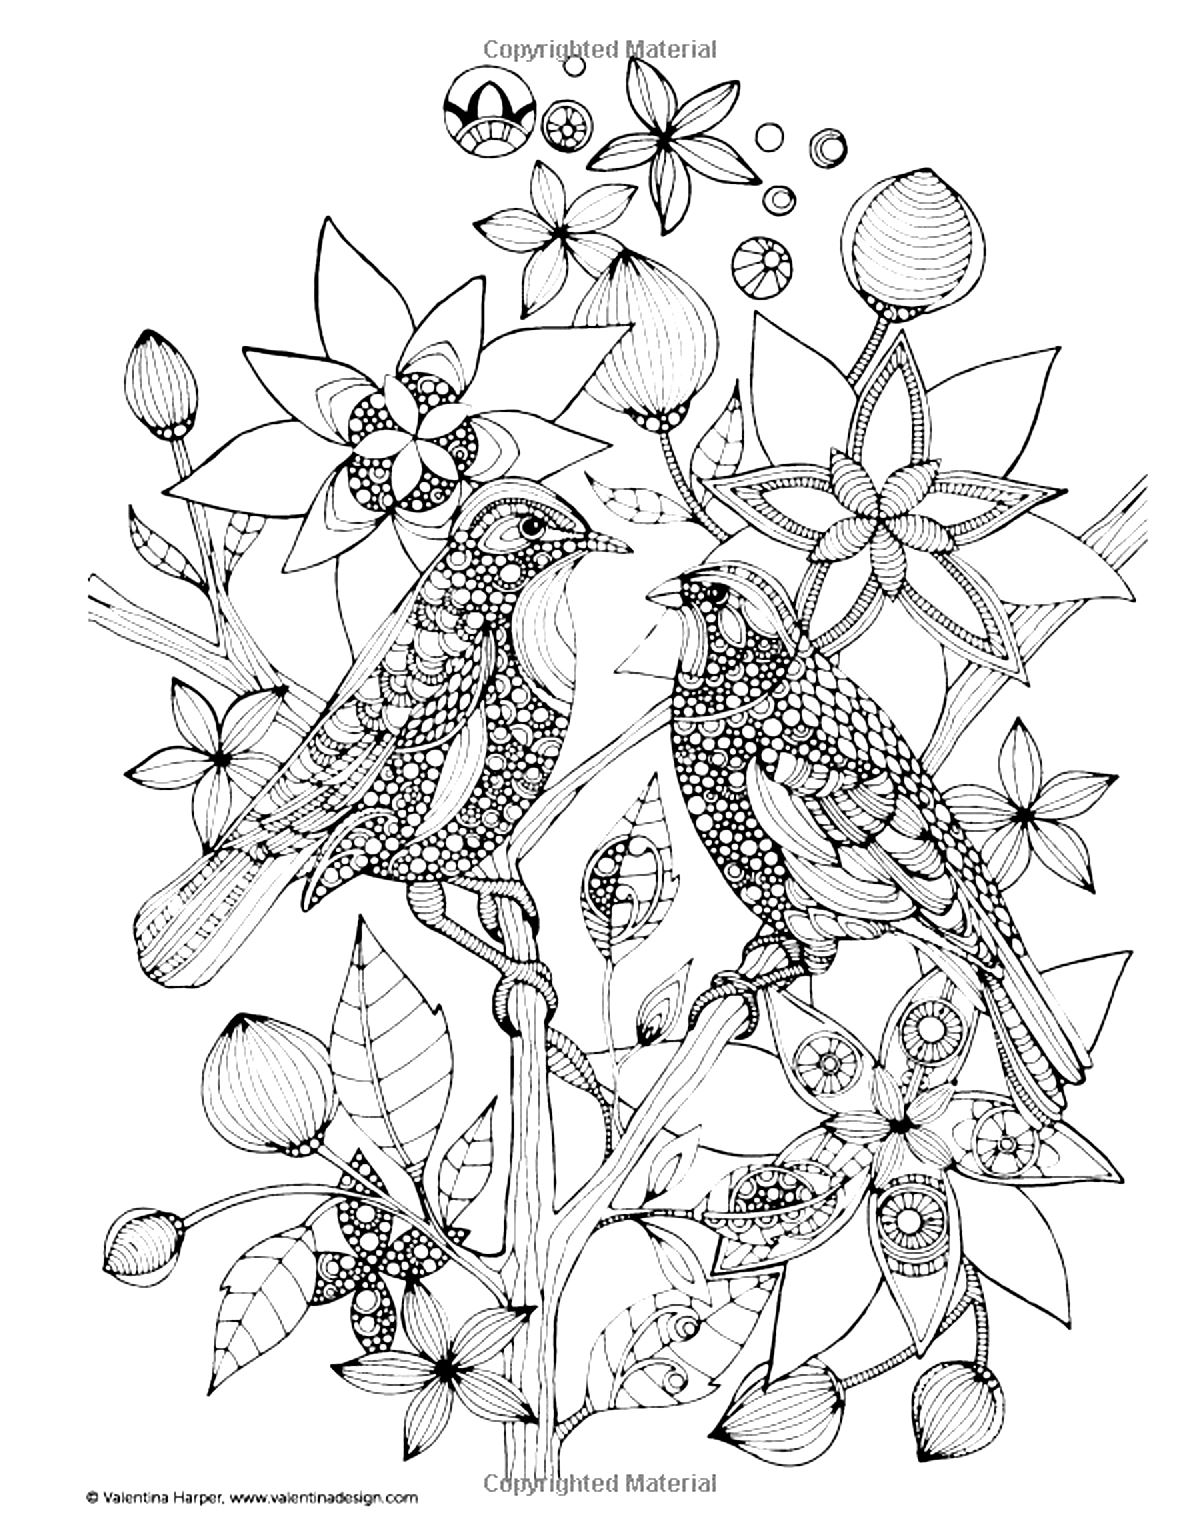 coloring pages of nature and animals giraffe head with flowers giraffes adult coloring pages of animals nature coloring pages and